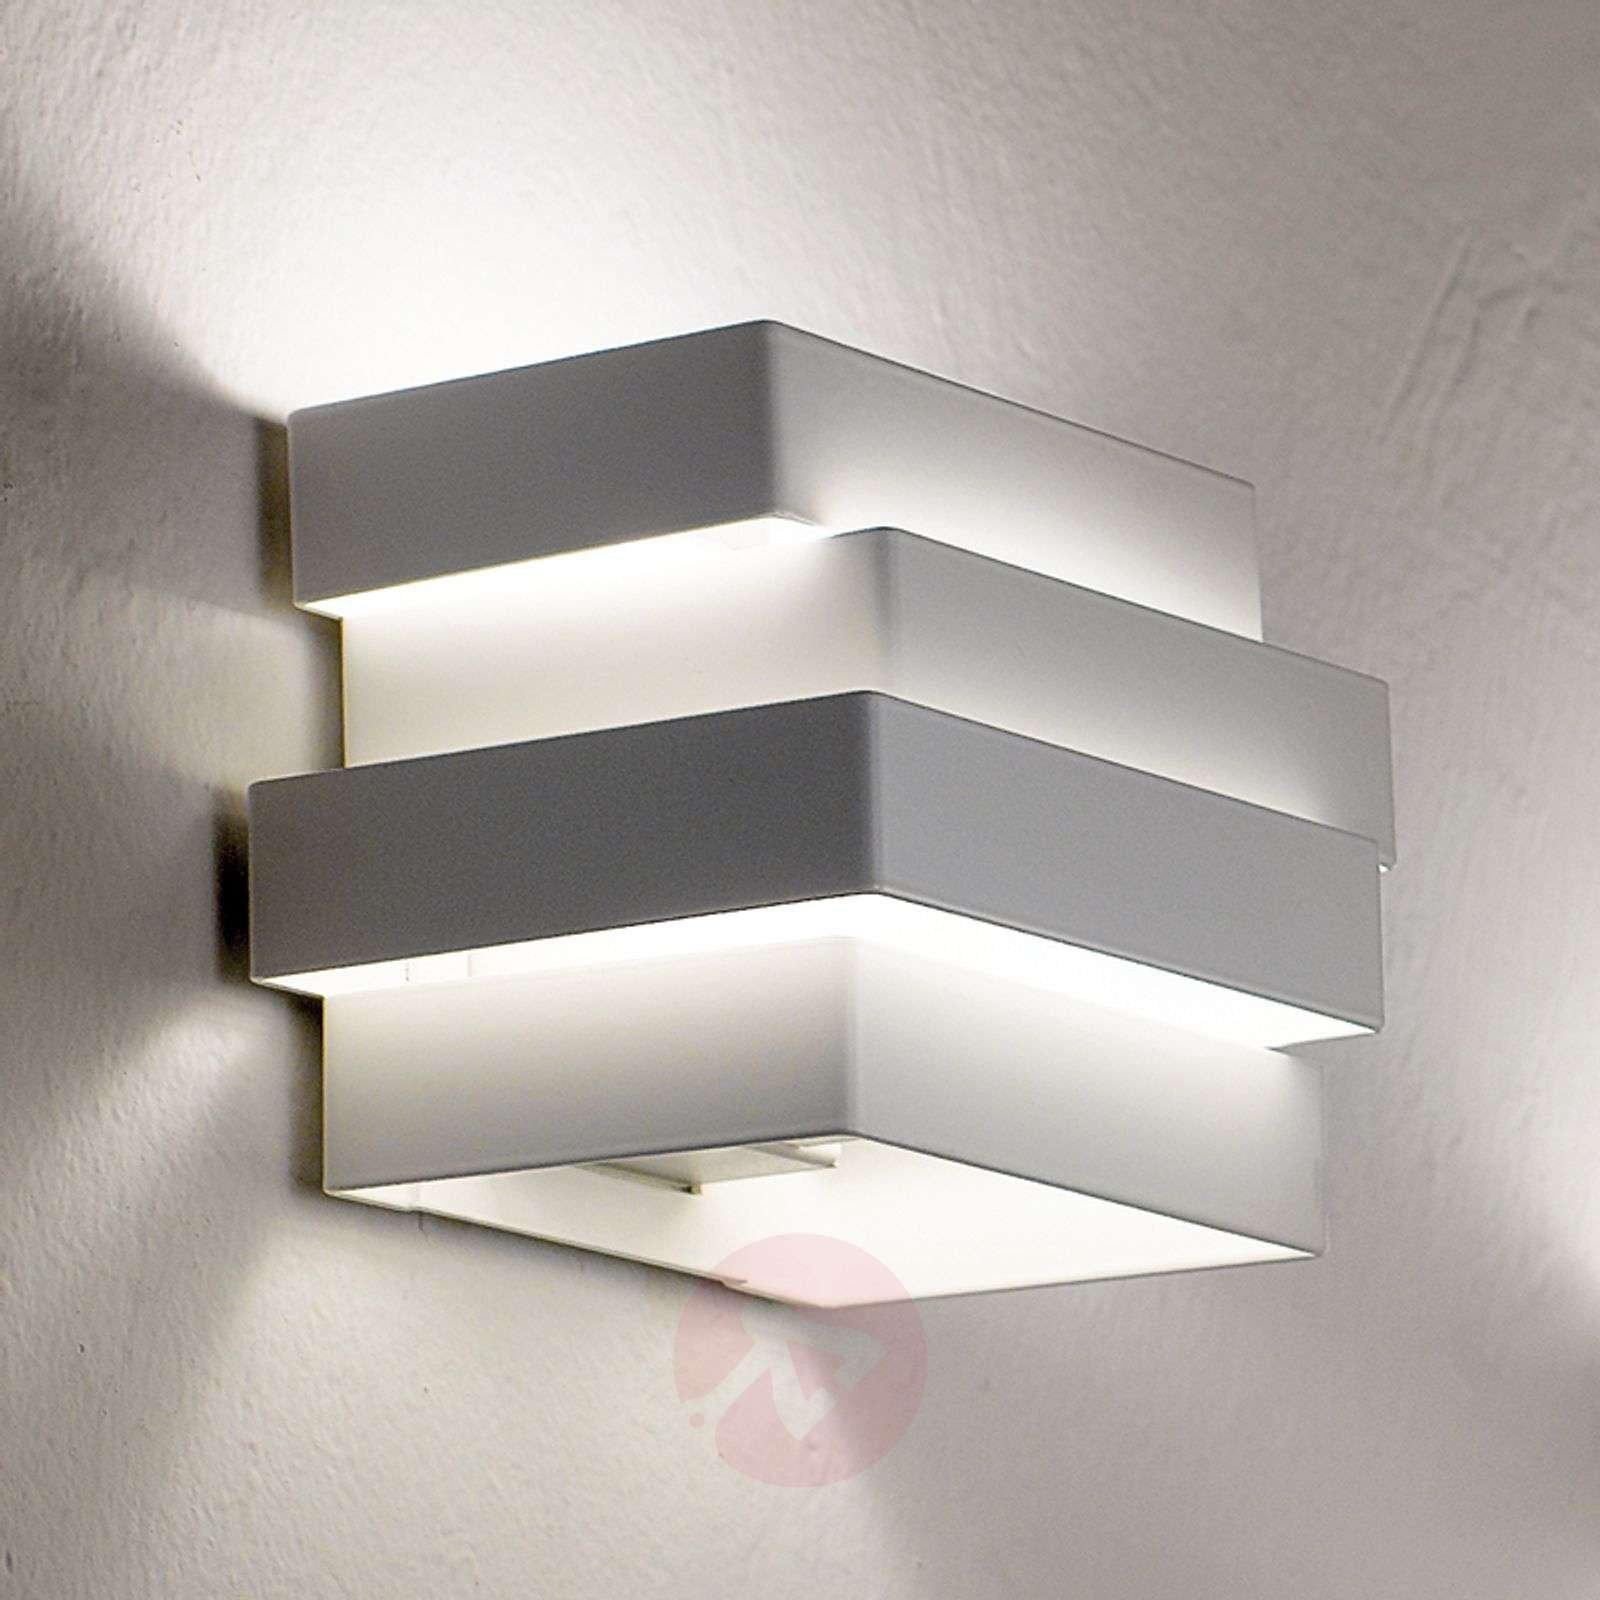 Escape Cube LED wall light, white-5501159-01